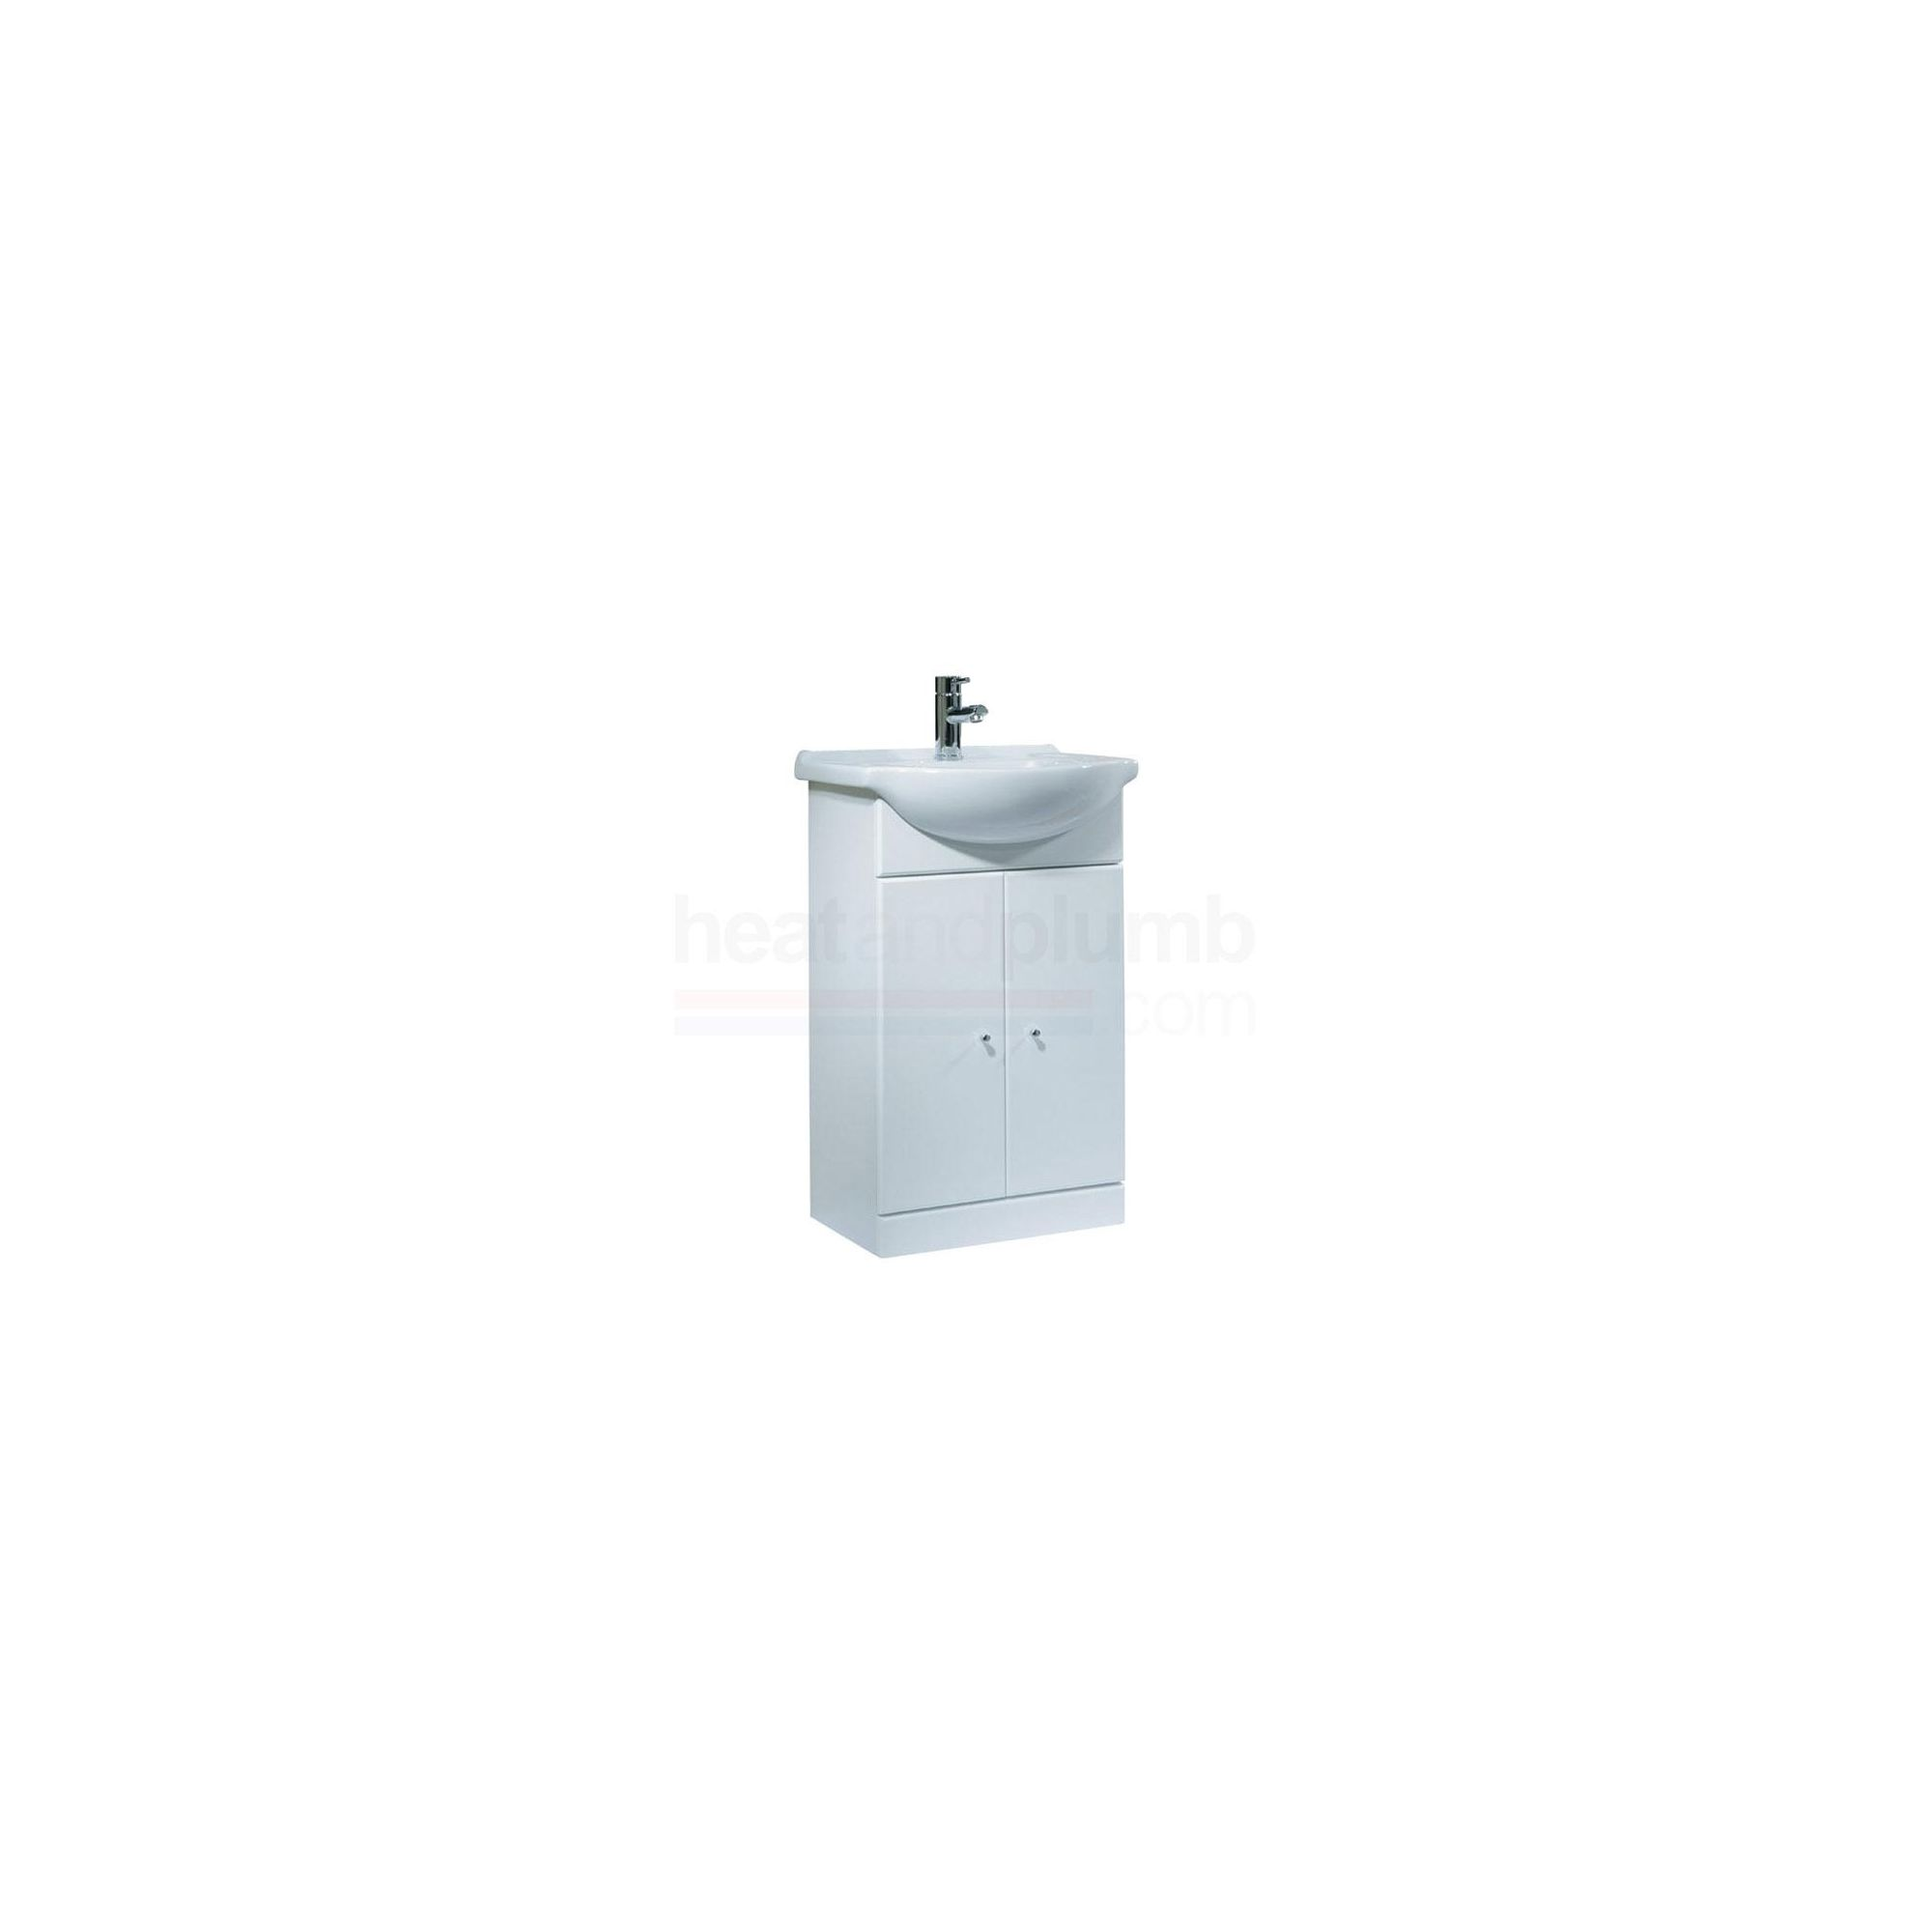 Tavistock Meridian White Twin Door Cabinet and Basin - 1 Tap Hole - 550mm Wide